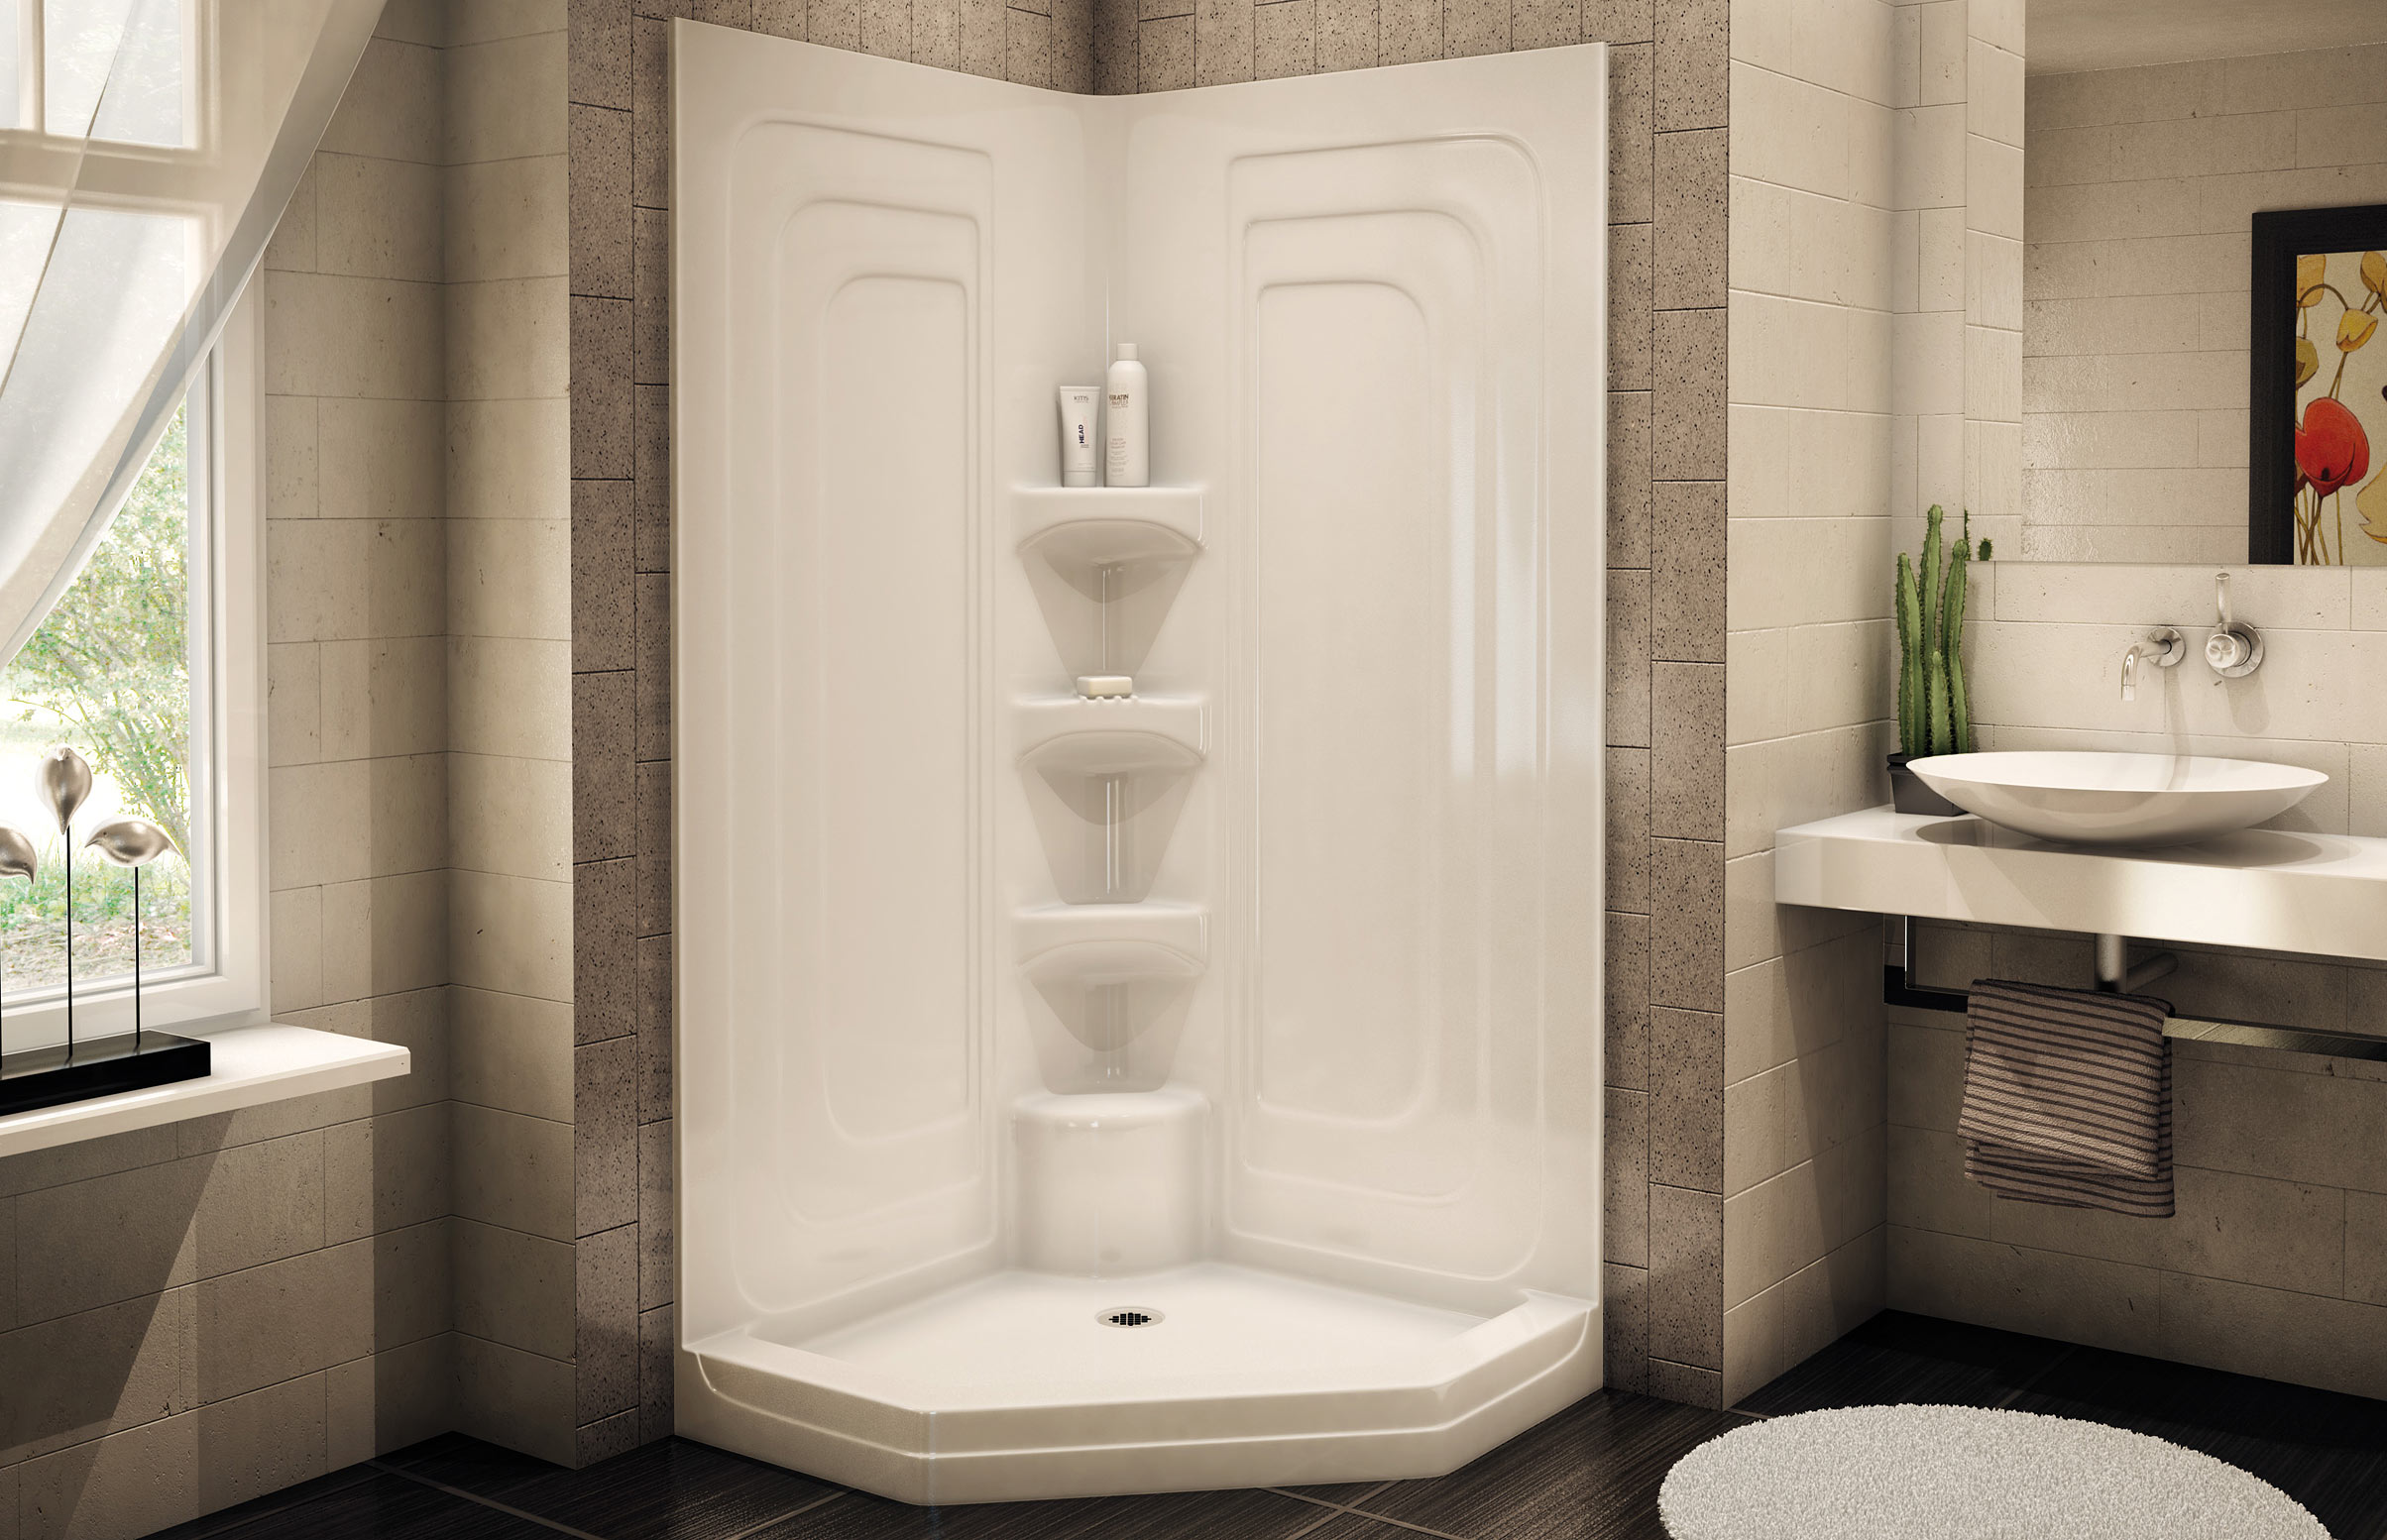 One Piece Shower Units For Having The Spa Sensation: Fantastic White Corner Design One Piece Shower Units